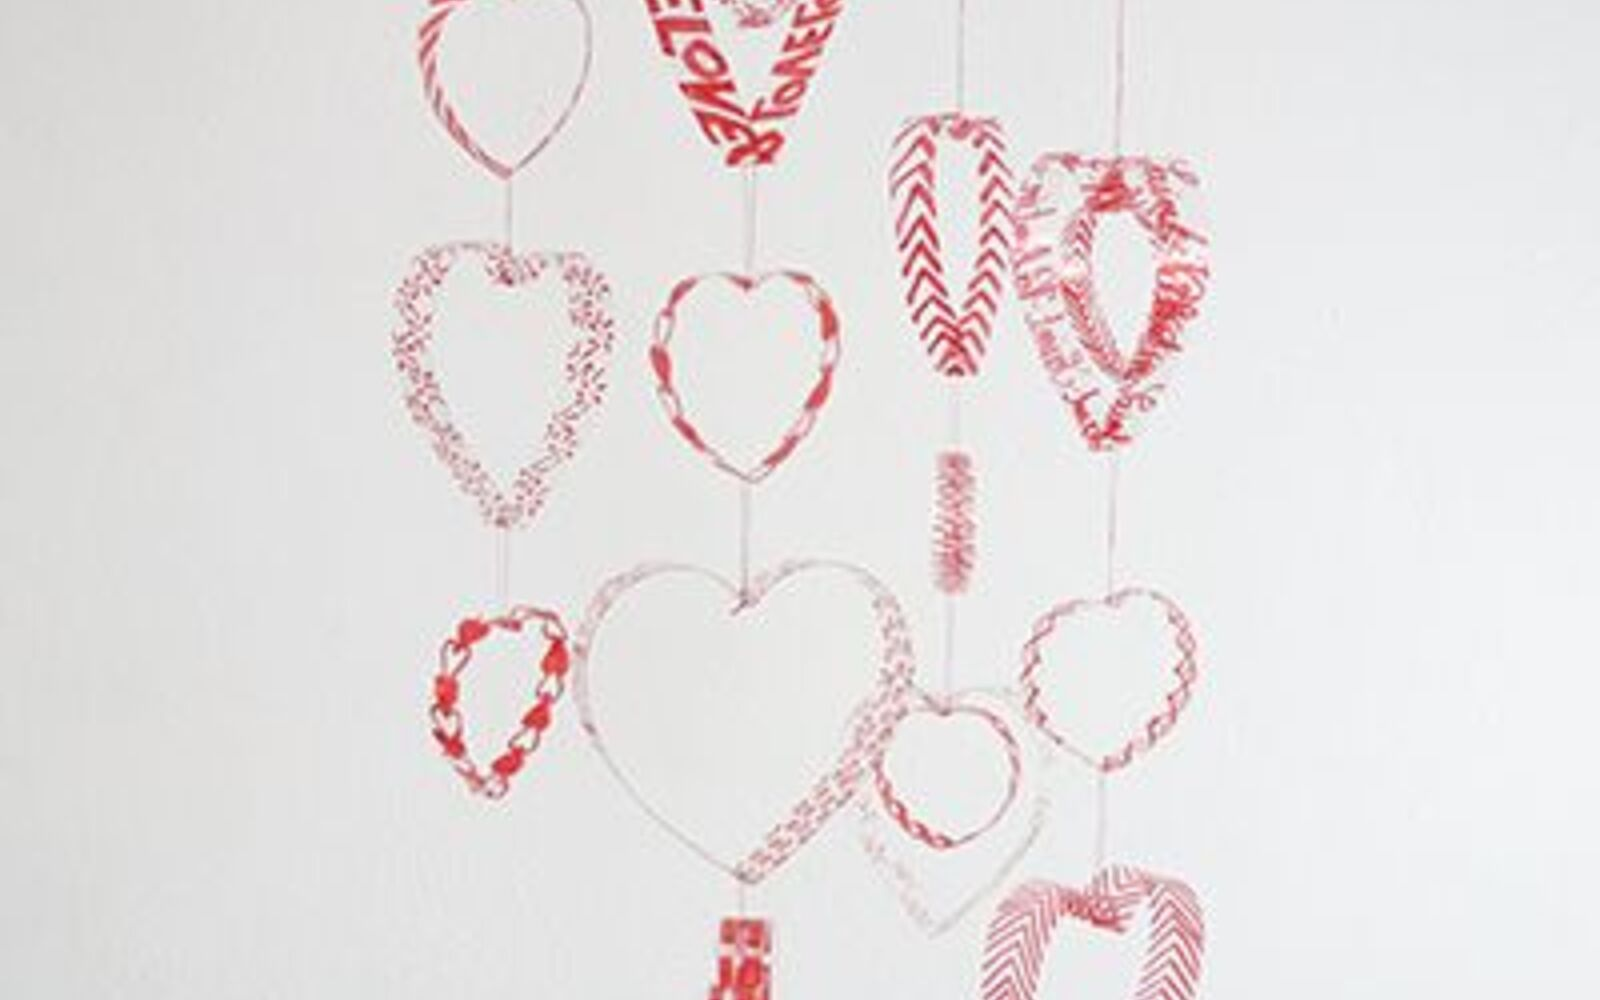 s 30 useful ways to reuse plastic bottles, Make them into a gorgeous heart mobile